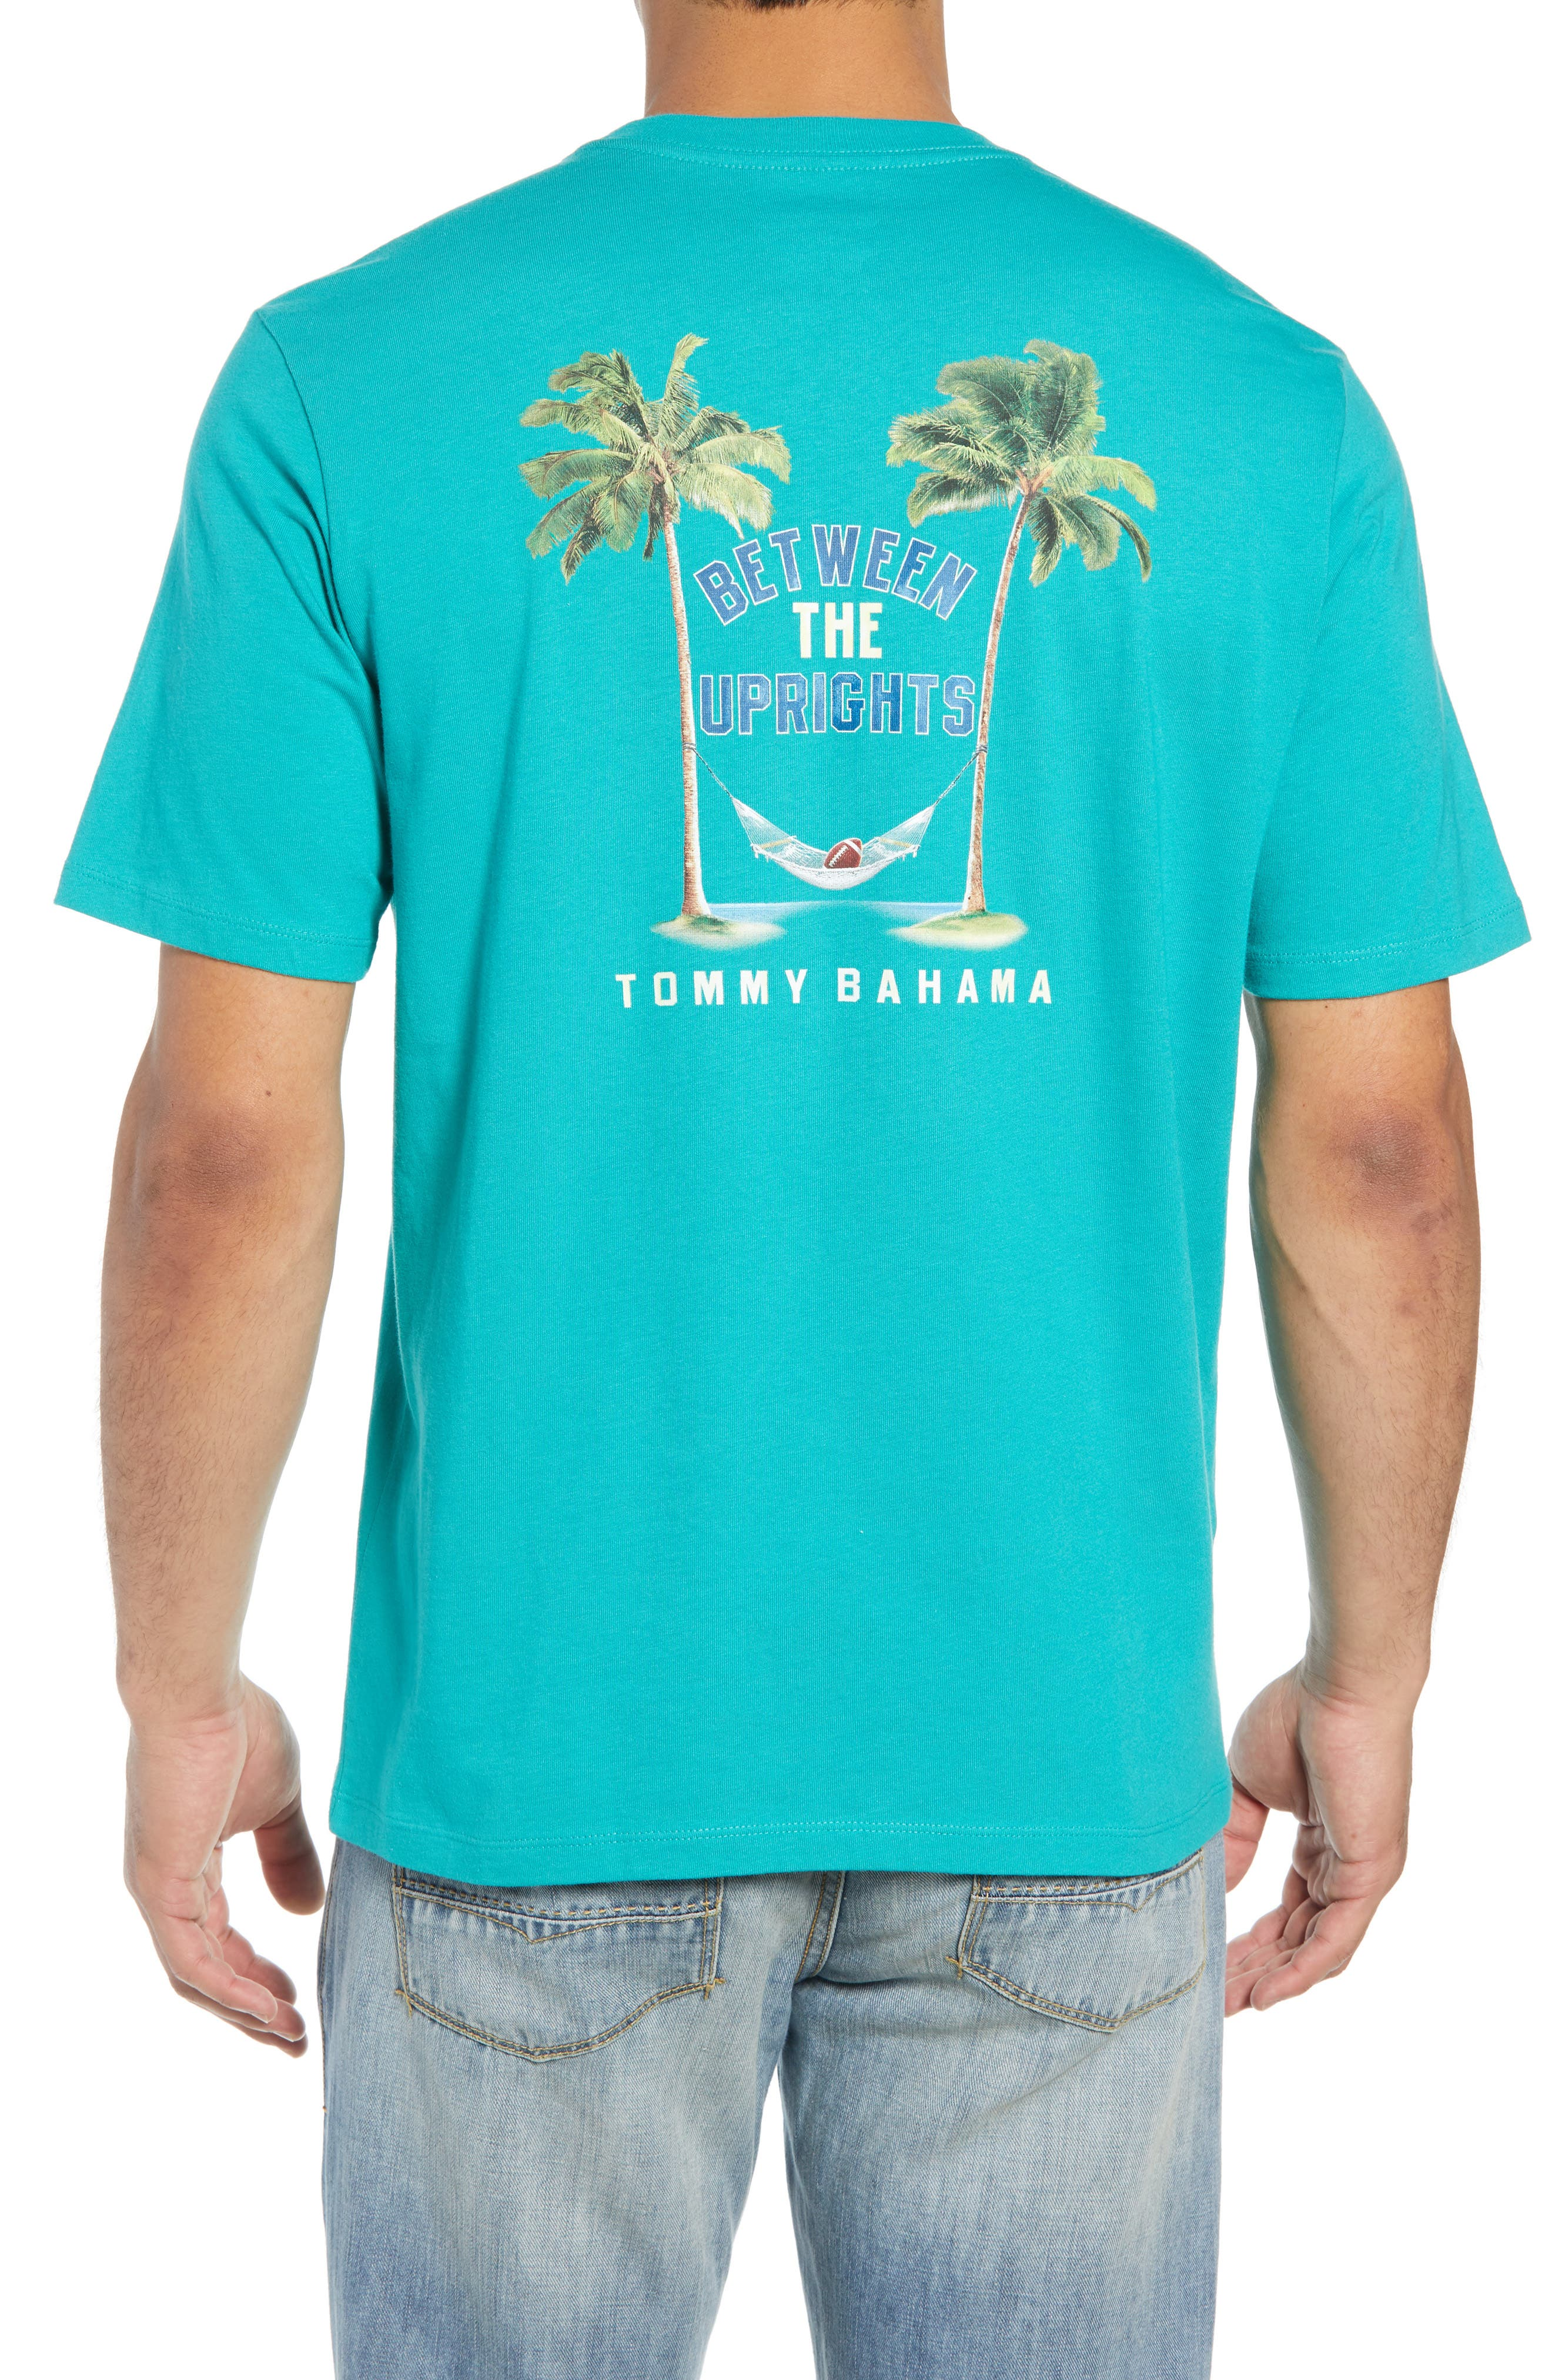 Between the Uprights Graphic T-Shirt,                             Alternate thumbnail 2, color,                             GULF SHORE